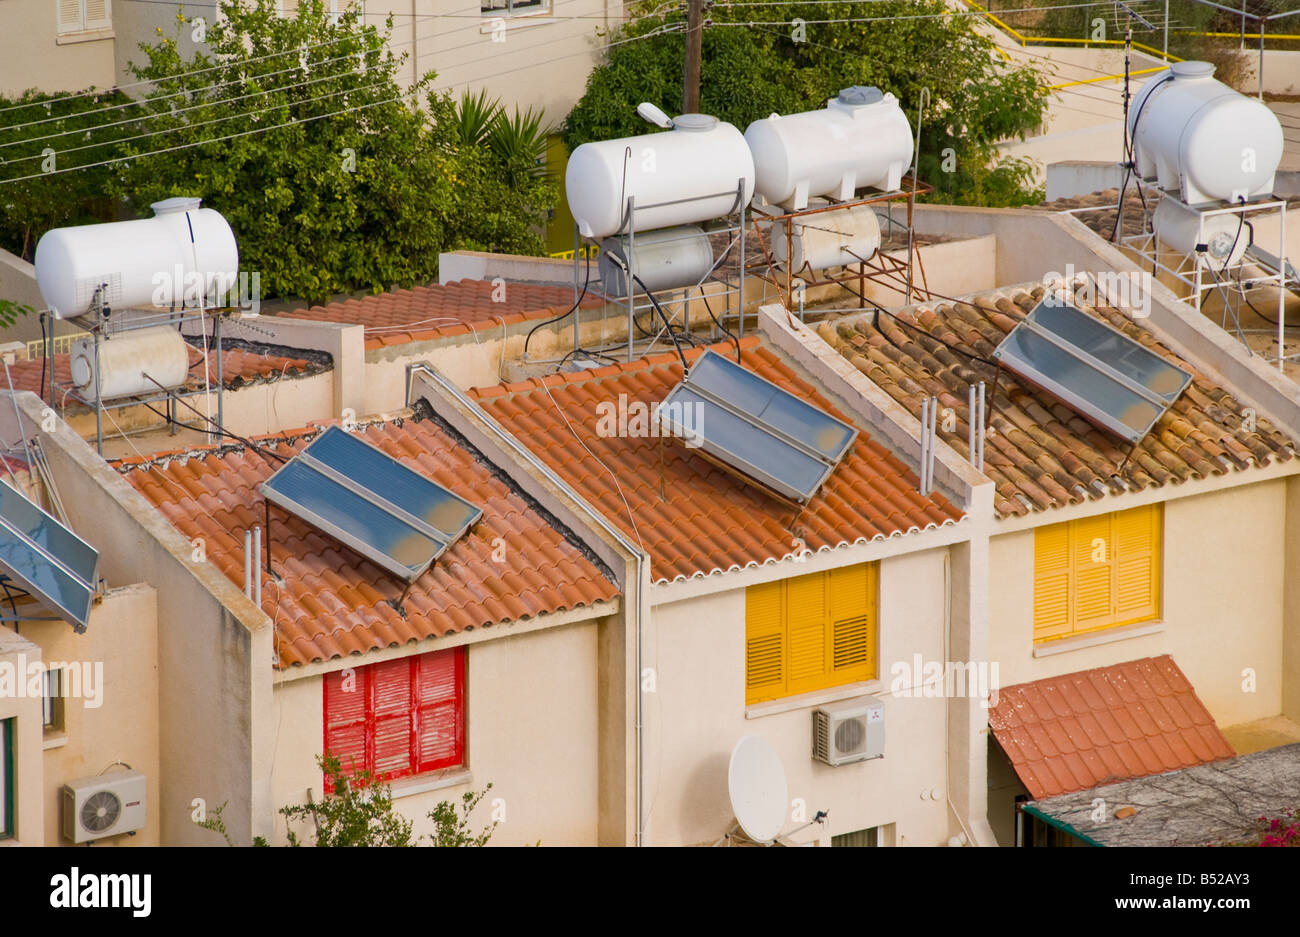 Home Heating And Hot Water Stockfotos & Home Heating And Hot Water ...